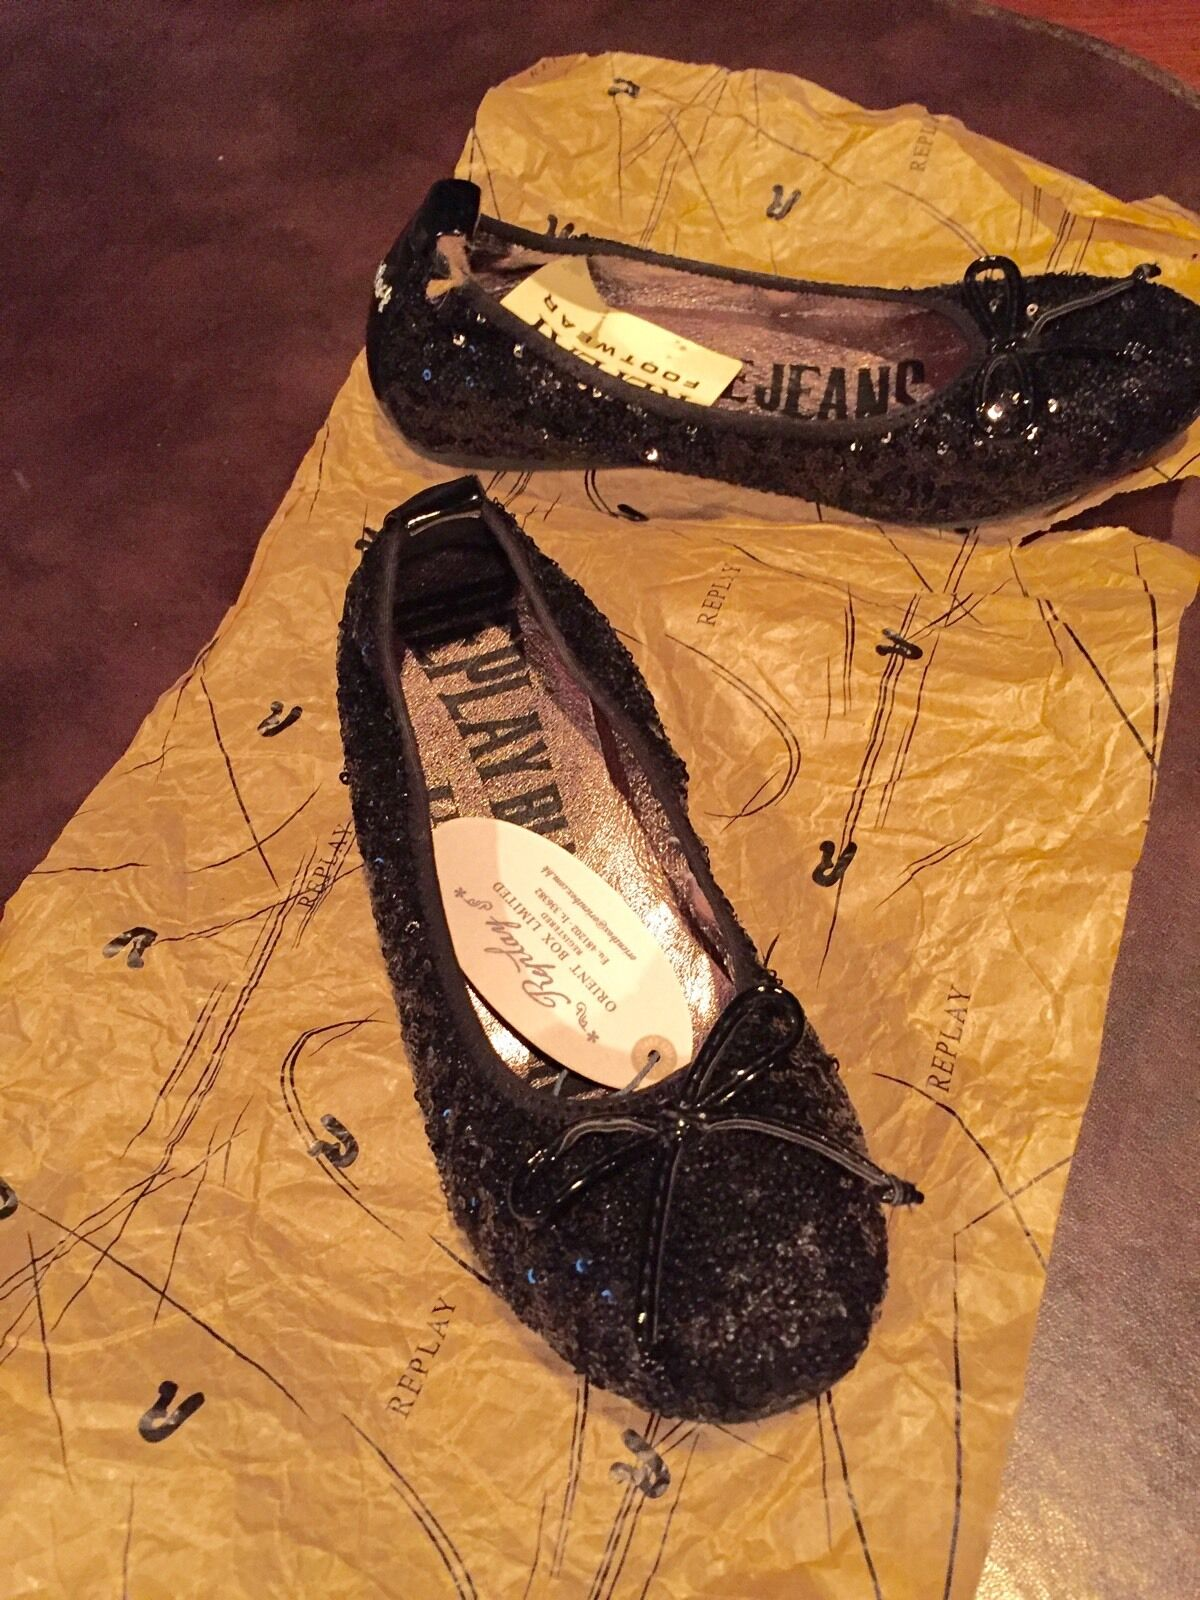 REPLAY BLACK SEQUINED FLATS BALLERINA Schuhe RUBBER TRACK SOLE SIZE 37 NEU